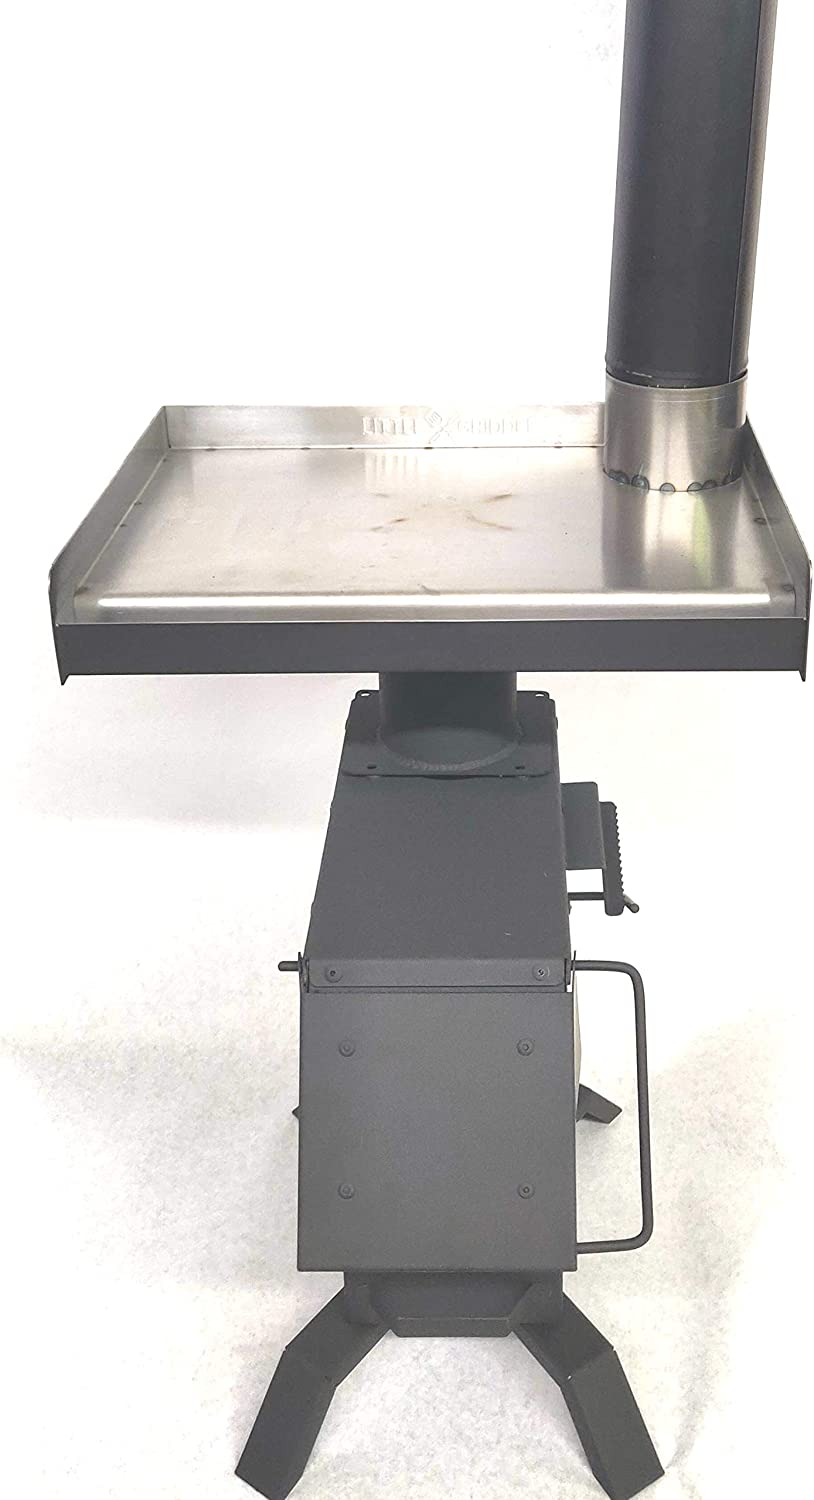 Bulletproof Griddle Me This Rocket Stove Adapter for Tent or Emergency Heating.